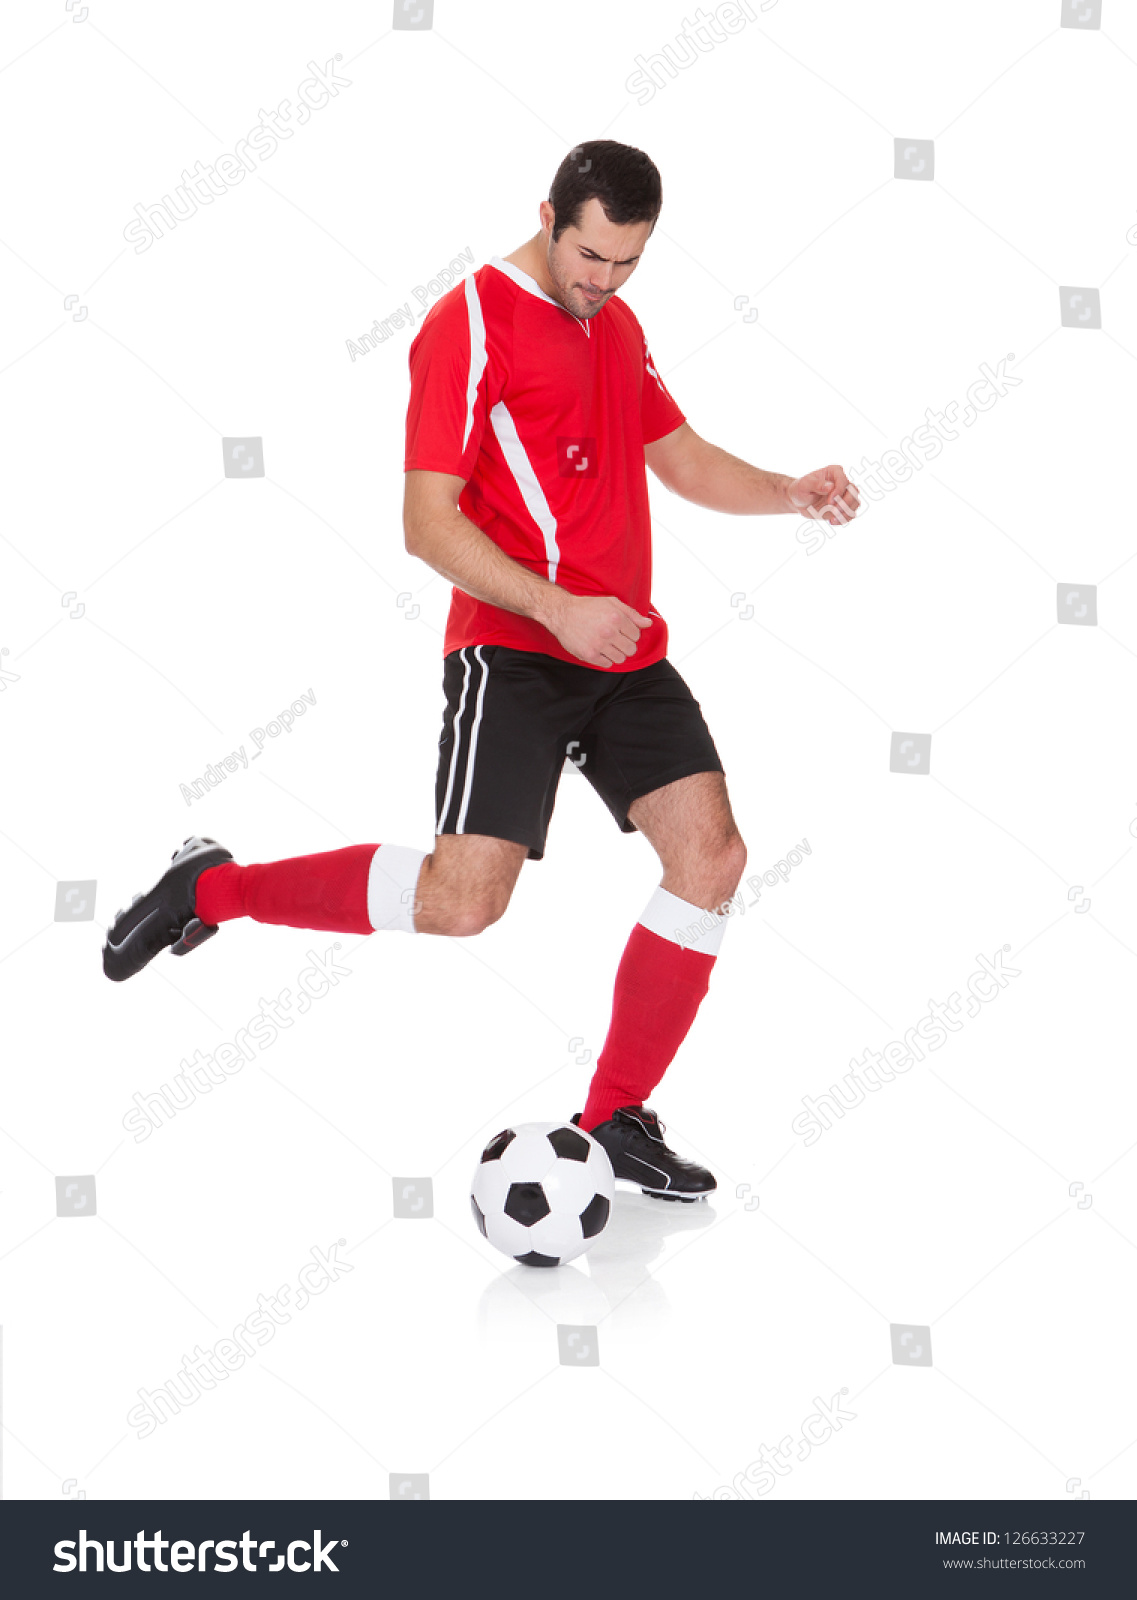 24d7b1a10 Studio shot of a young football player kicking a ball and looking at the  camera isolated on white background